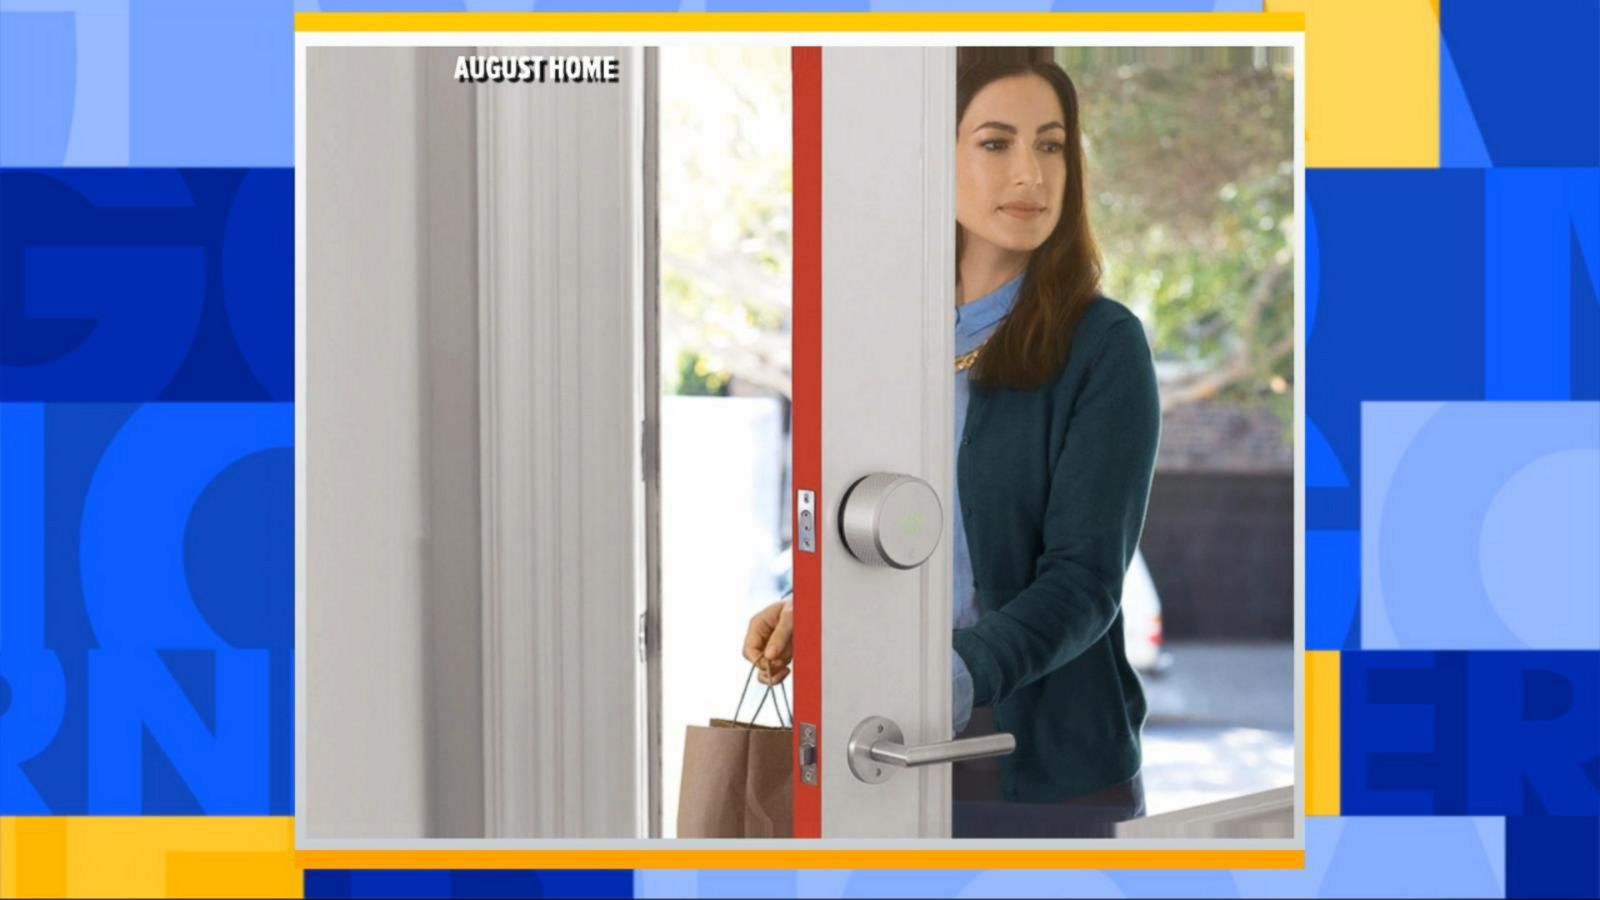 VIDEO: New Technology Could See Packages Delivered Inside Your Home